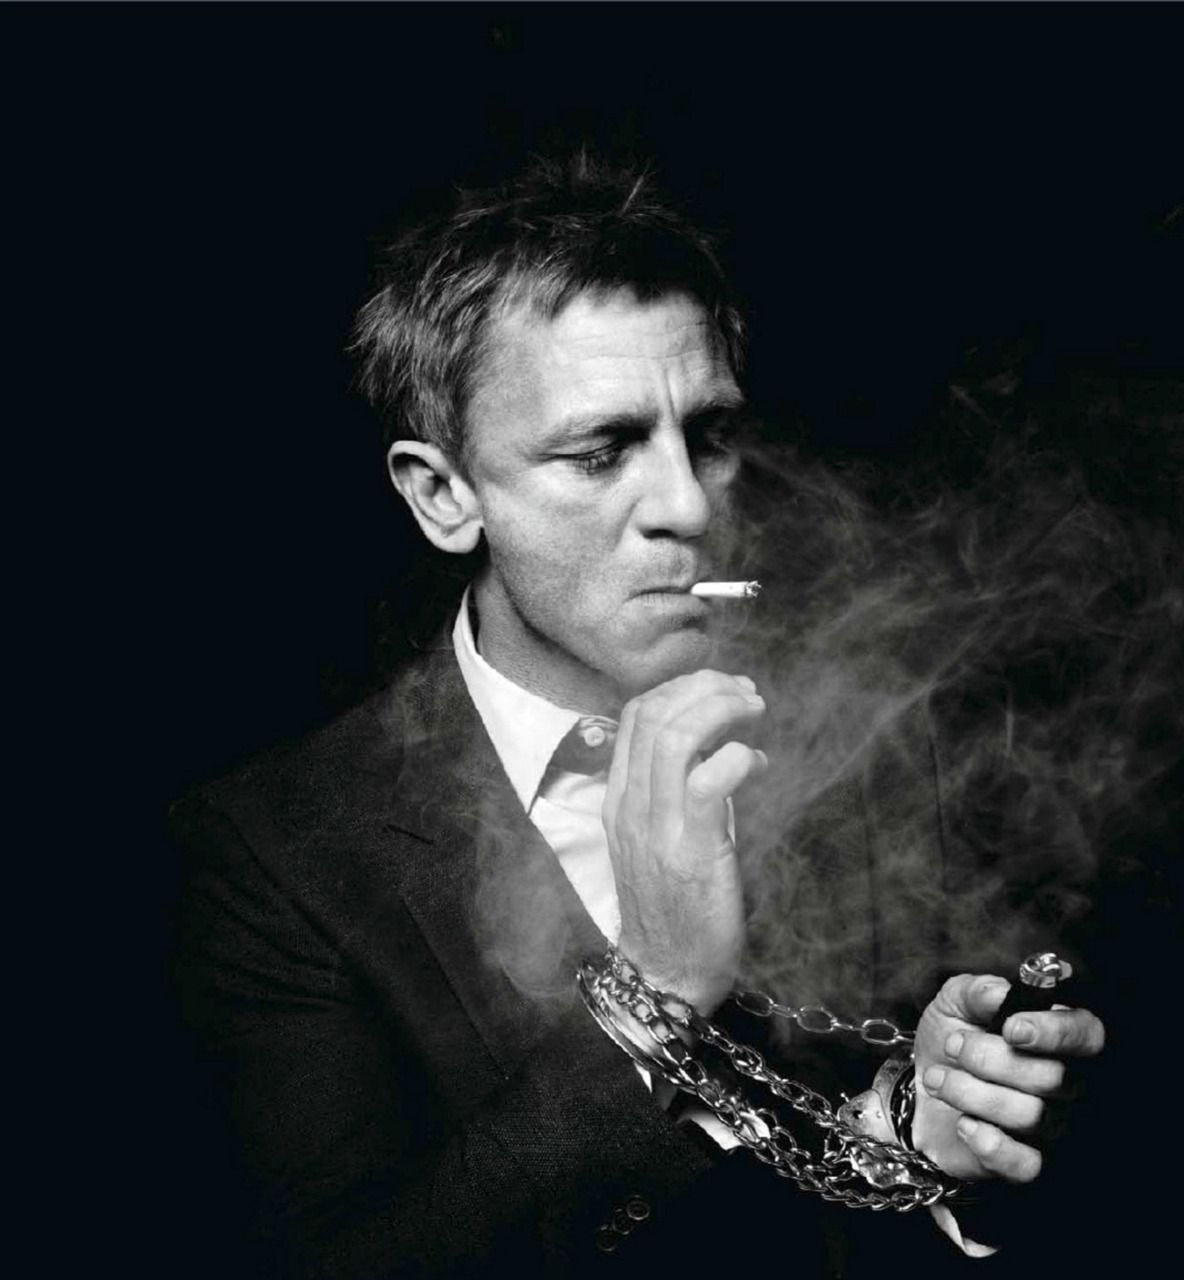 Daniel Craig | The Girl With the Dragon Tattoo